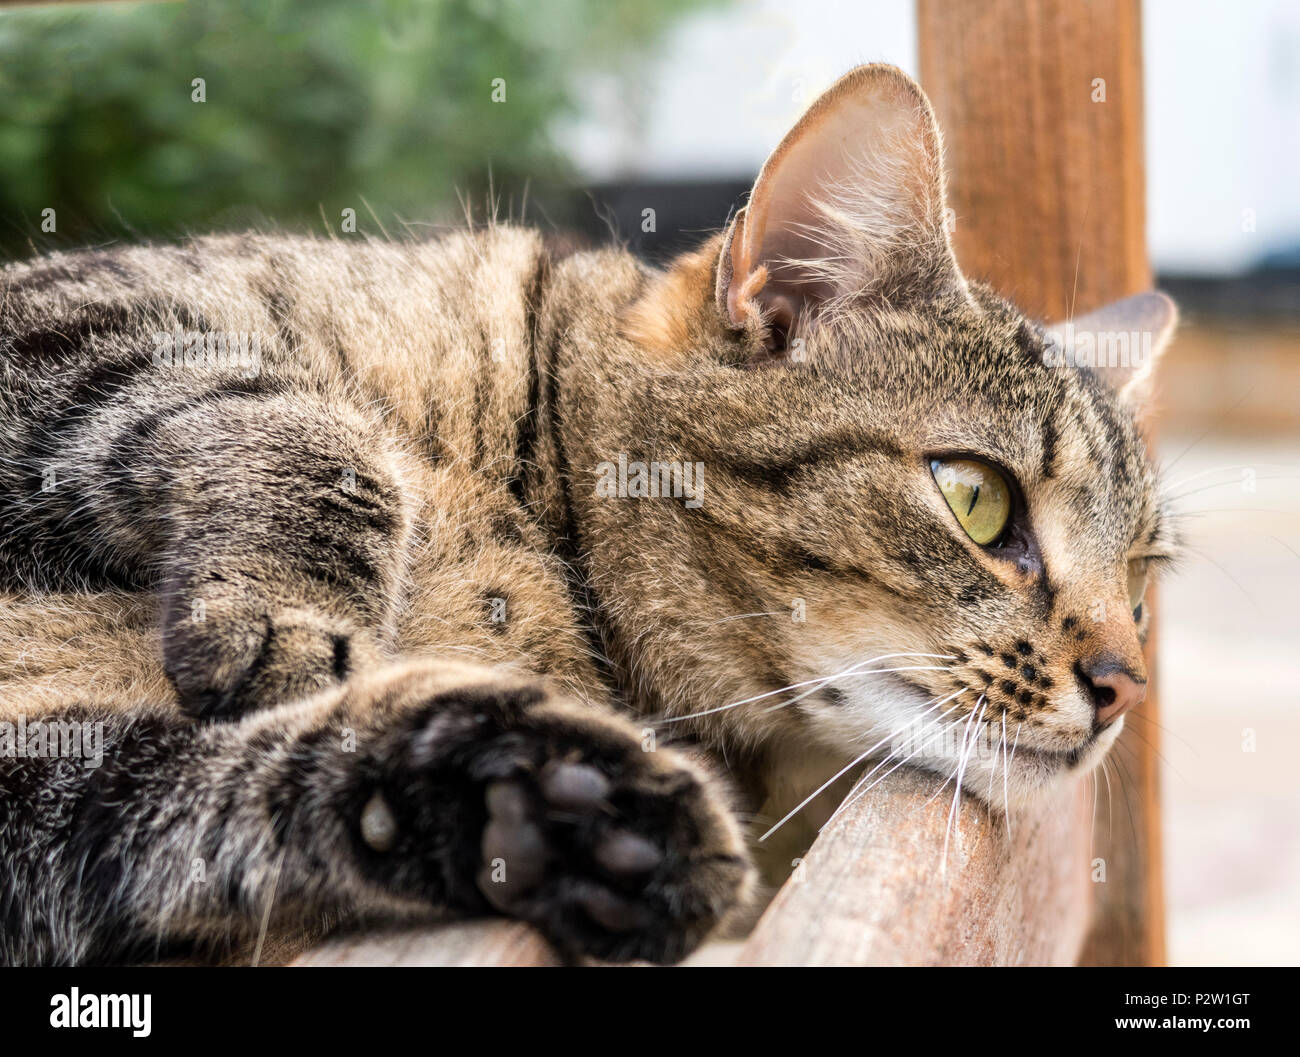 Tabby cat, bengal cat, resting on a garden bench. - Stock Image